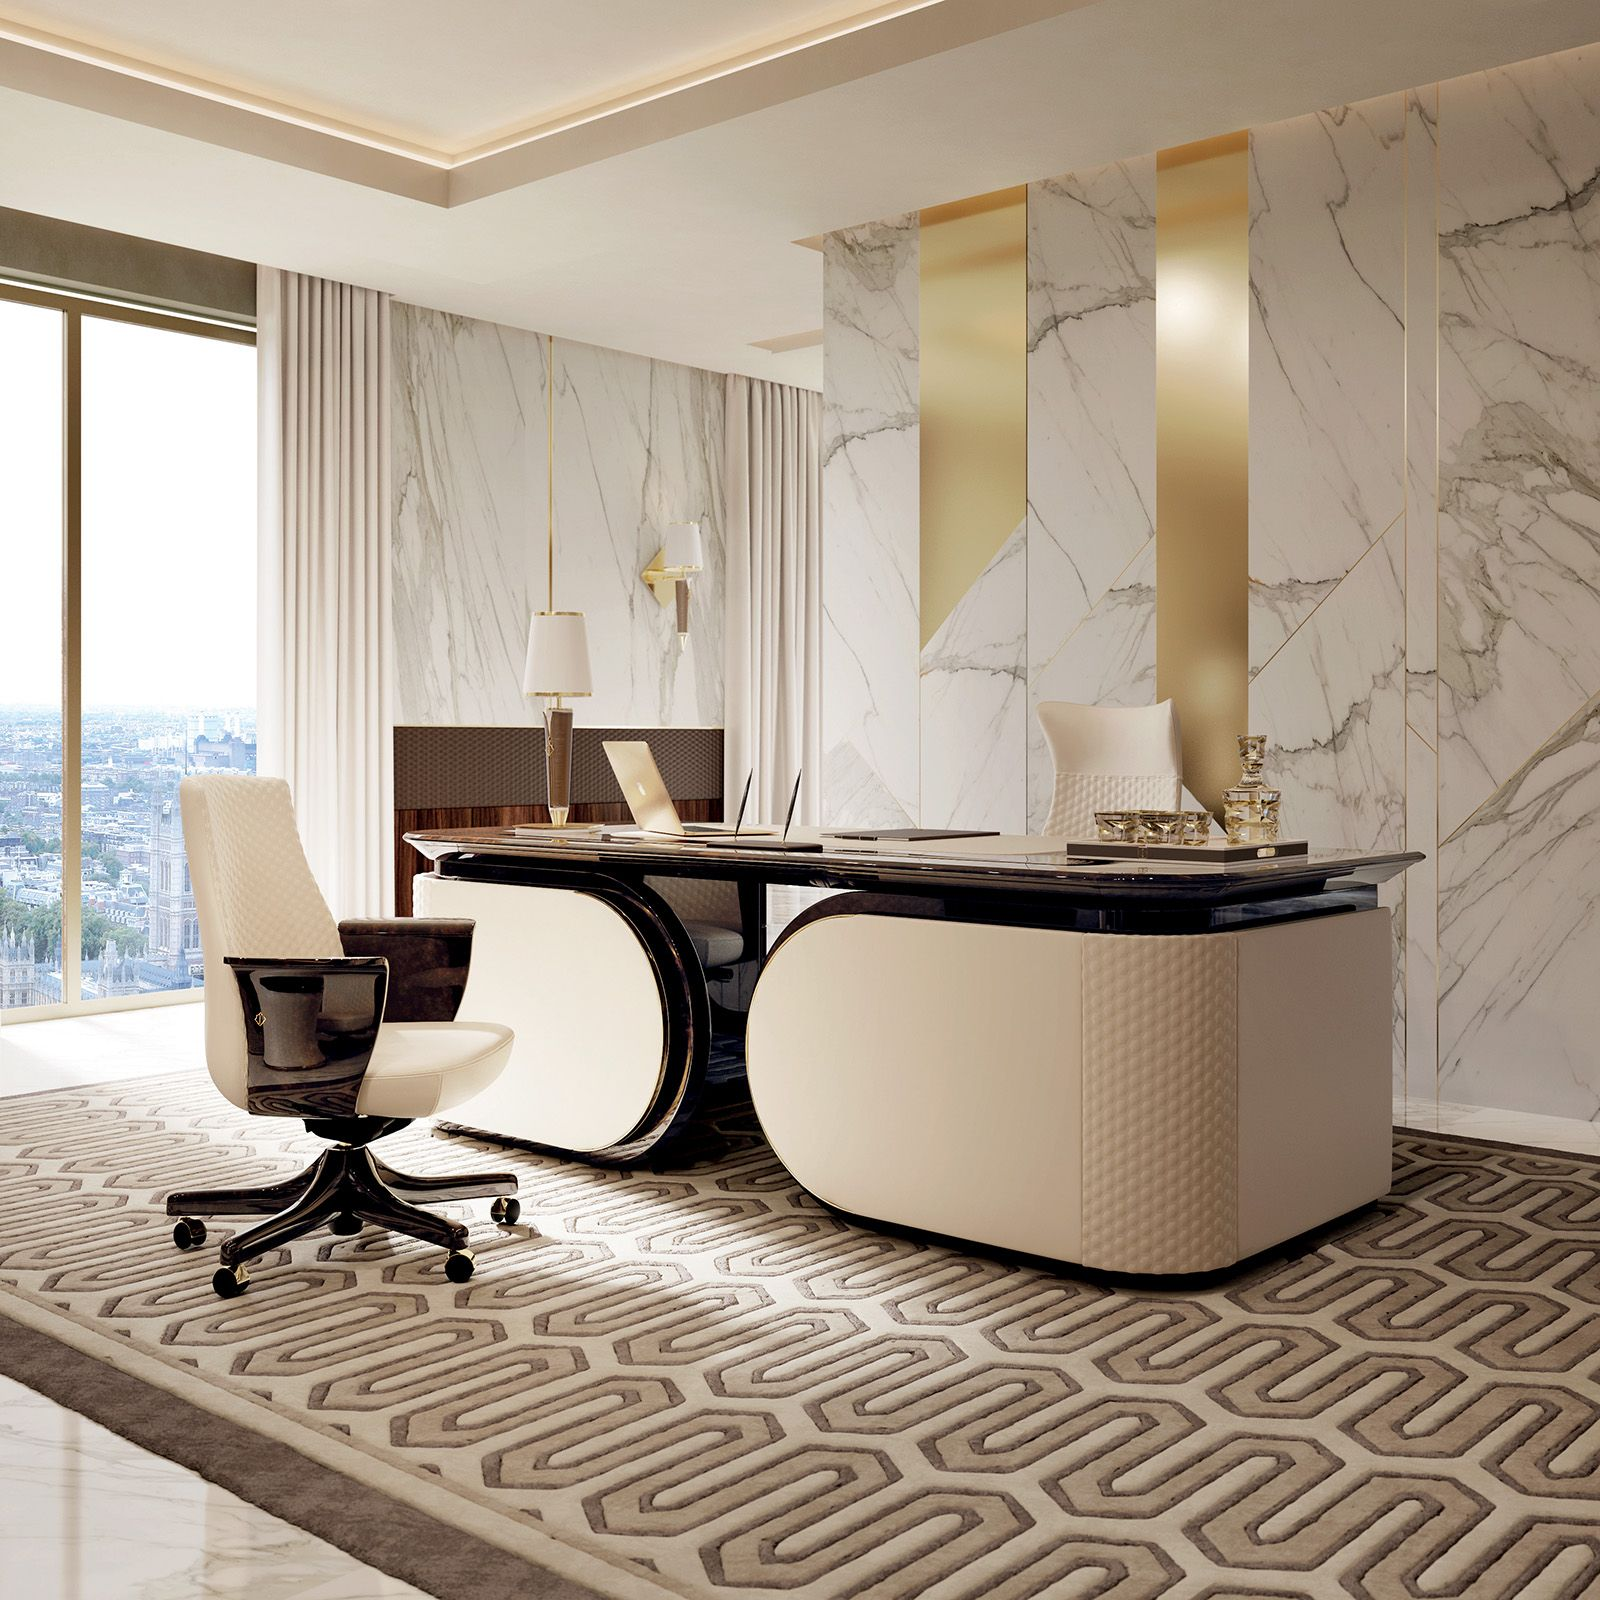 Vogue collection italian luxury office desk for Best luxury interior designers